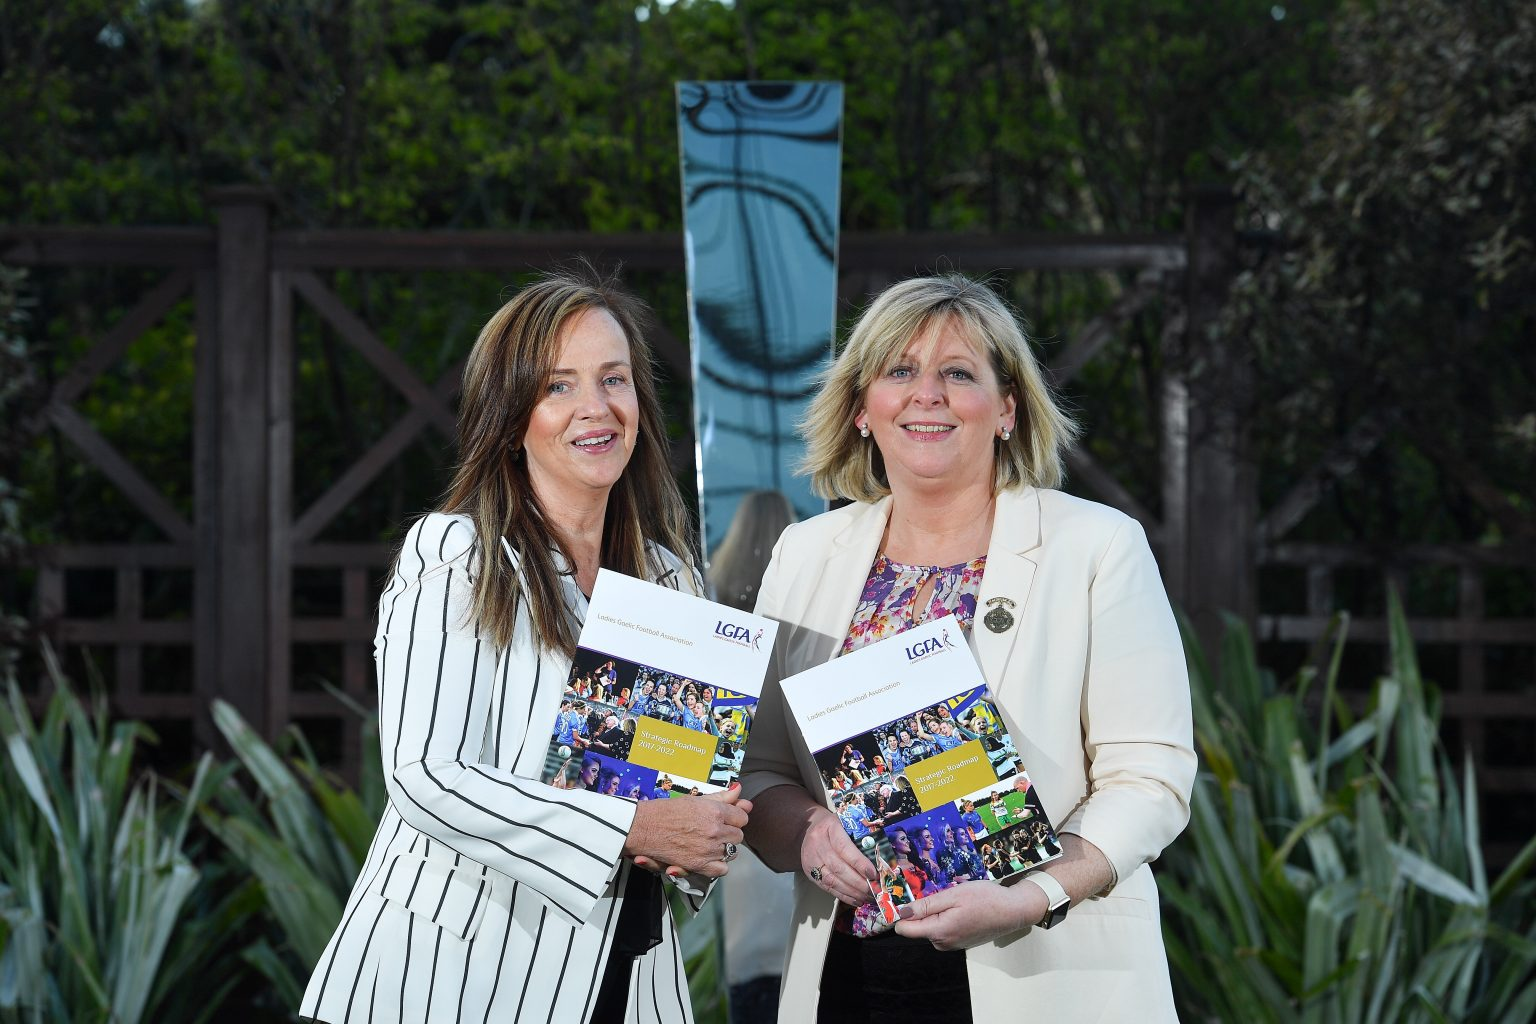 Two Ladies one in a white jacket with black stripes and other in plain white jacket holding the Ladies Gaelic Football Association stratgegic roadmap booklet